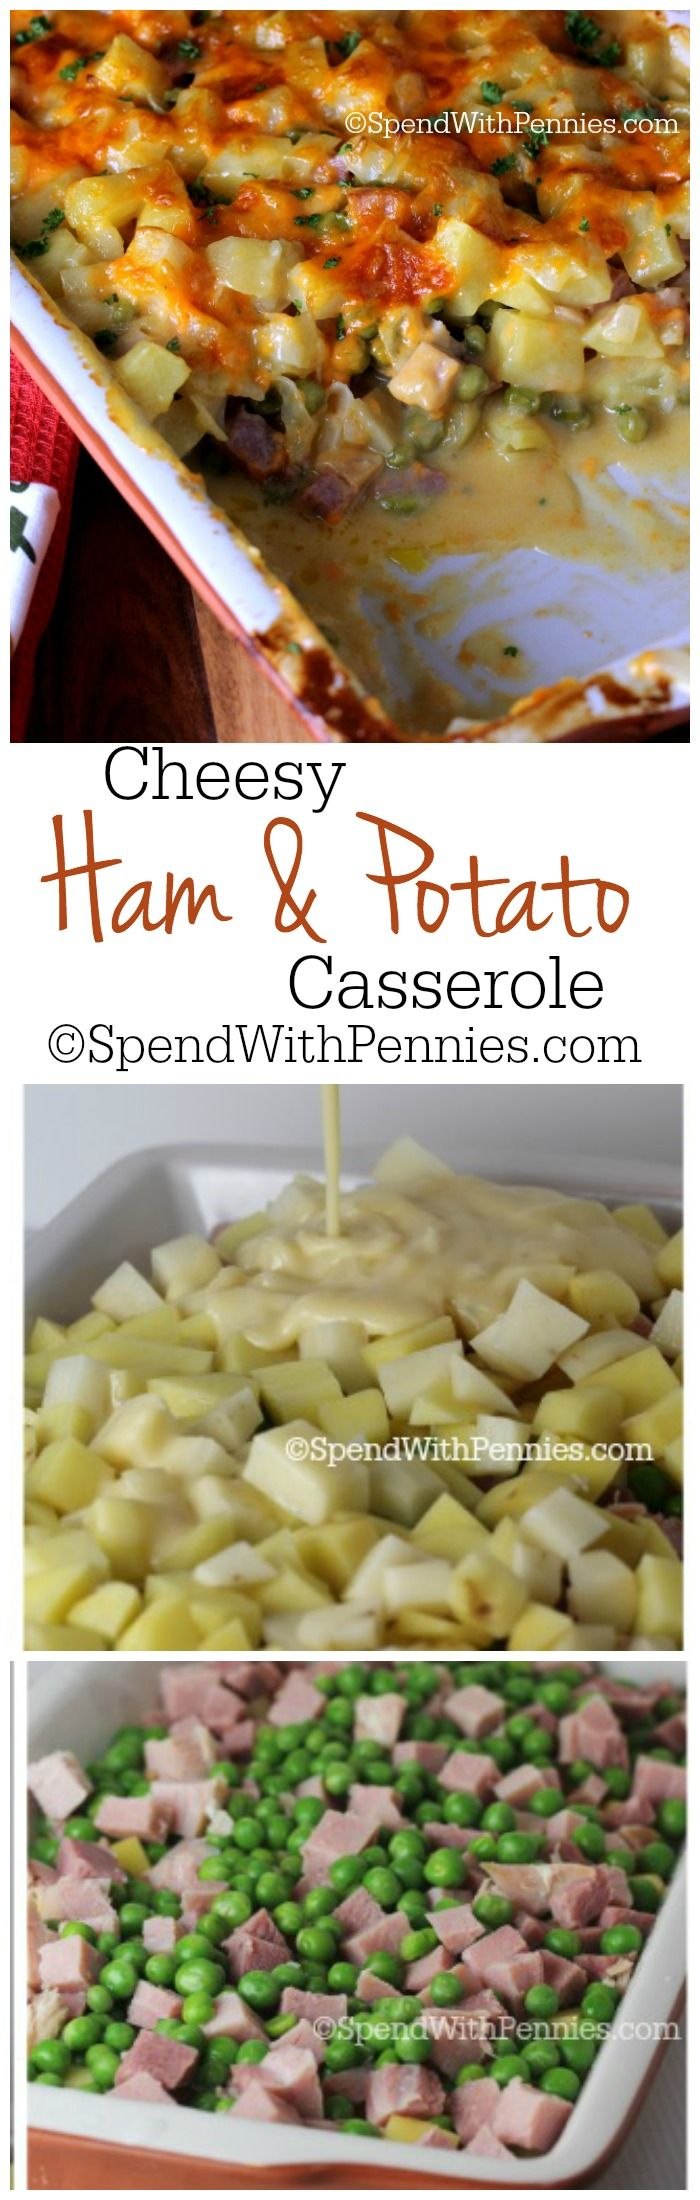 Delicious layers of potatoes, ham & peas smothered in a creamy homemade cheese sauce!!  <3